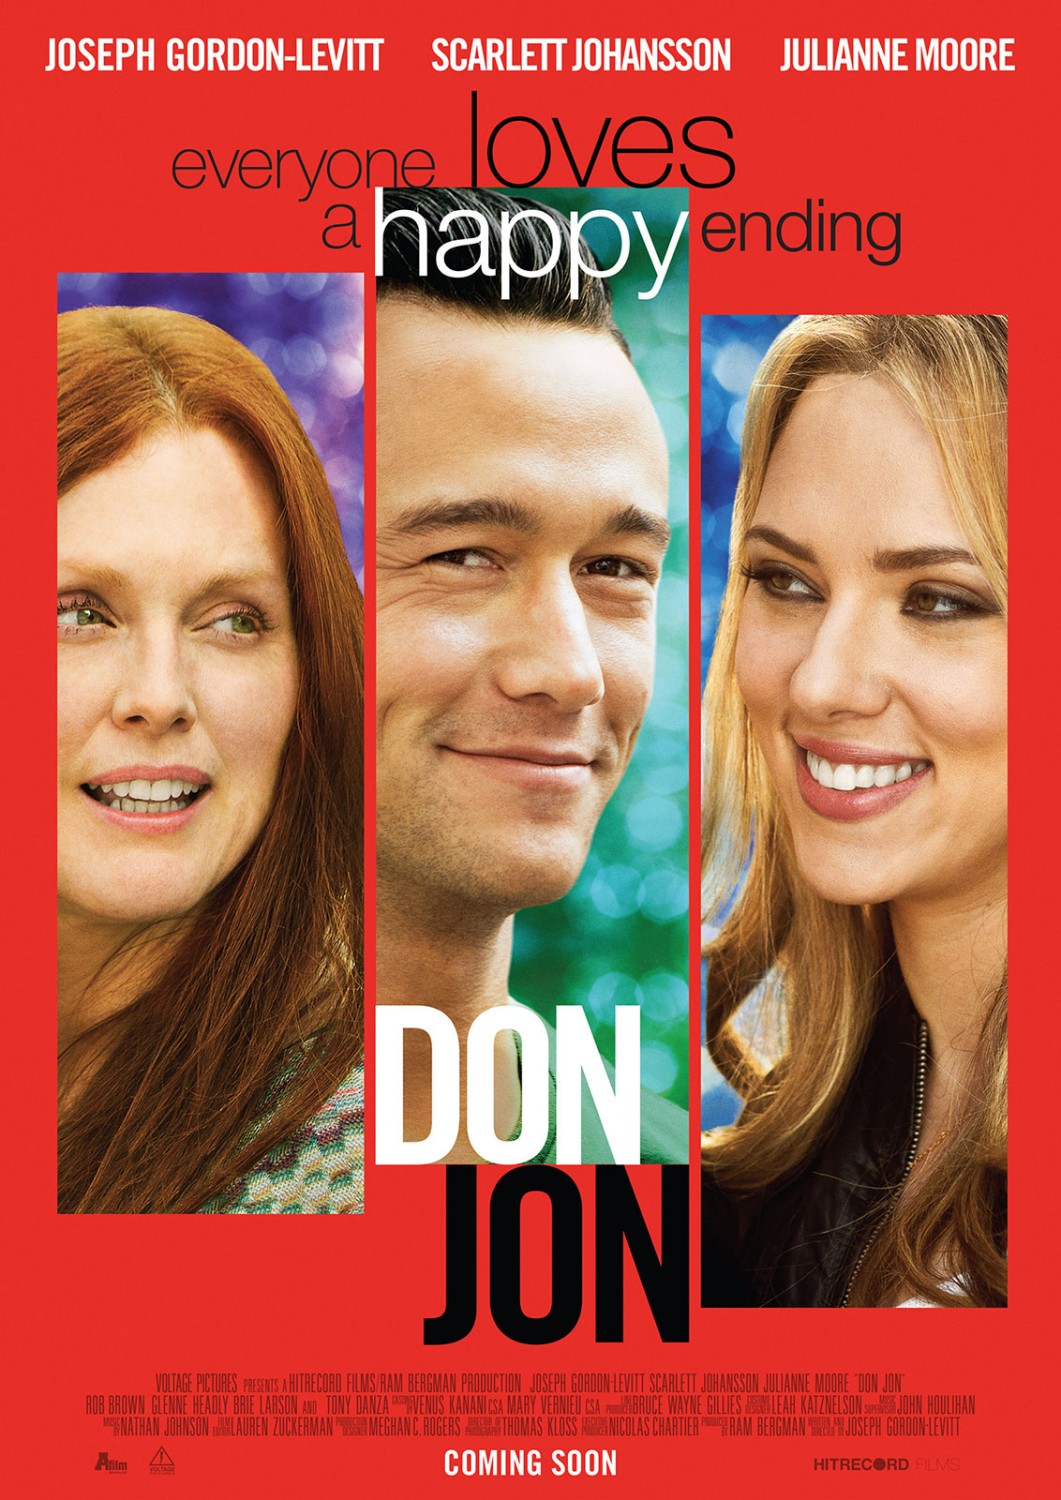 """Film Don Jon Has Good Messages To Give Us,  Yet Puts A Moral Responsibility On Women To """"Fix"""" Men"""